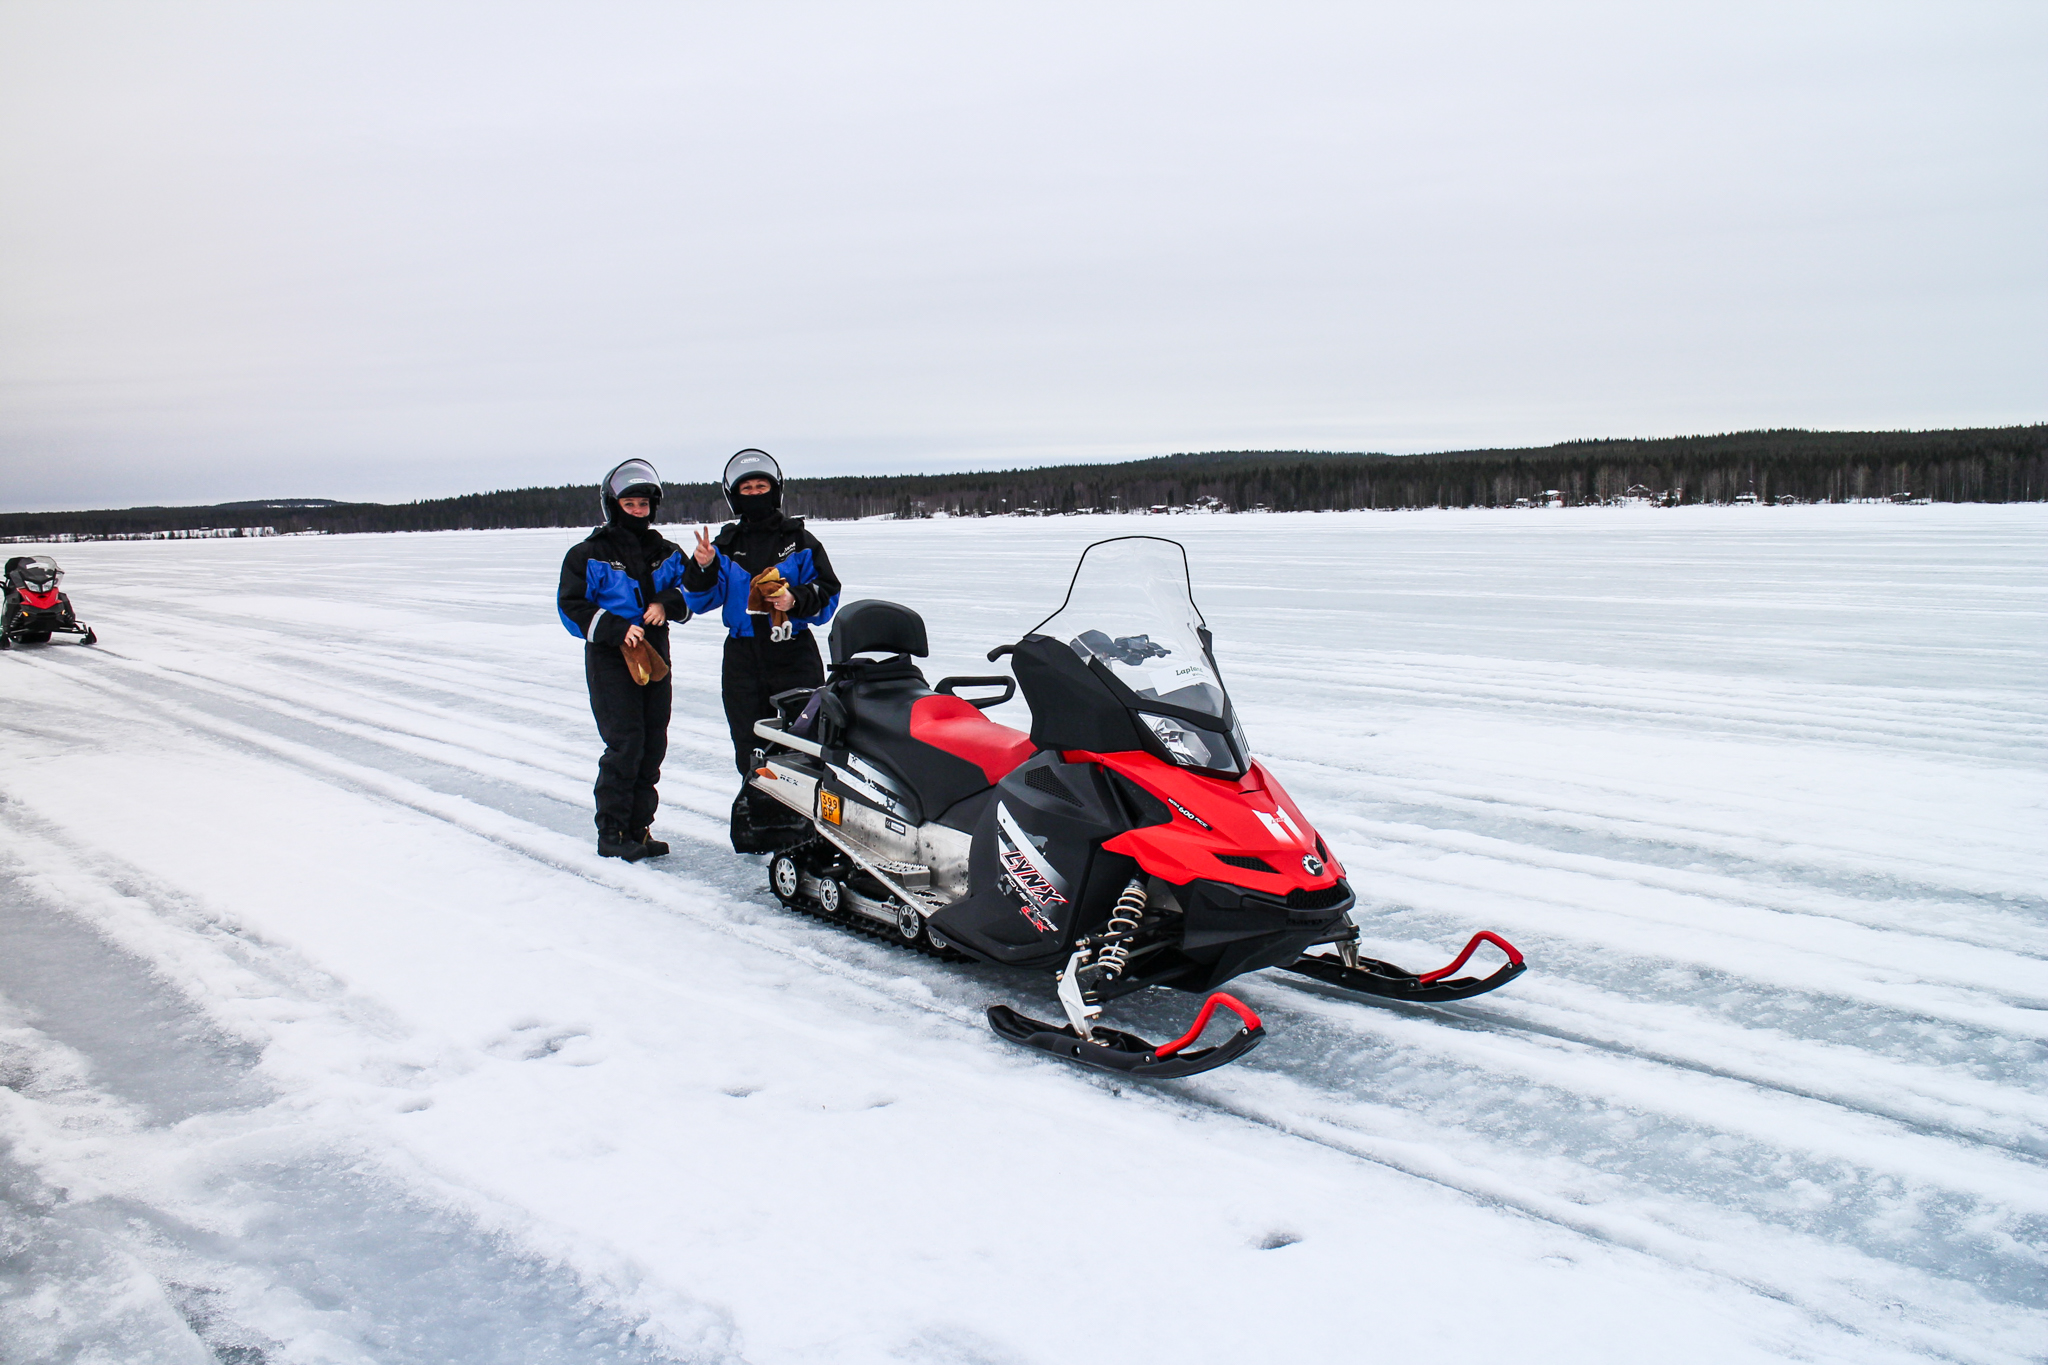 Two people with Snowmobile in Landscape